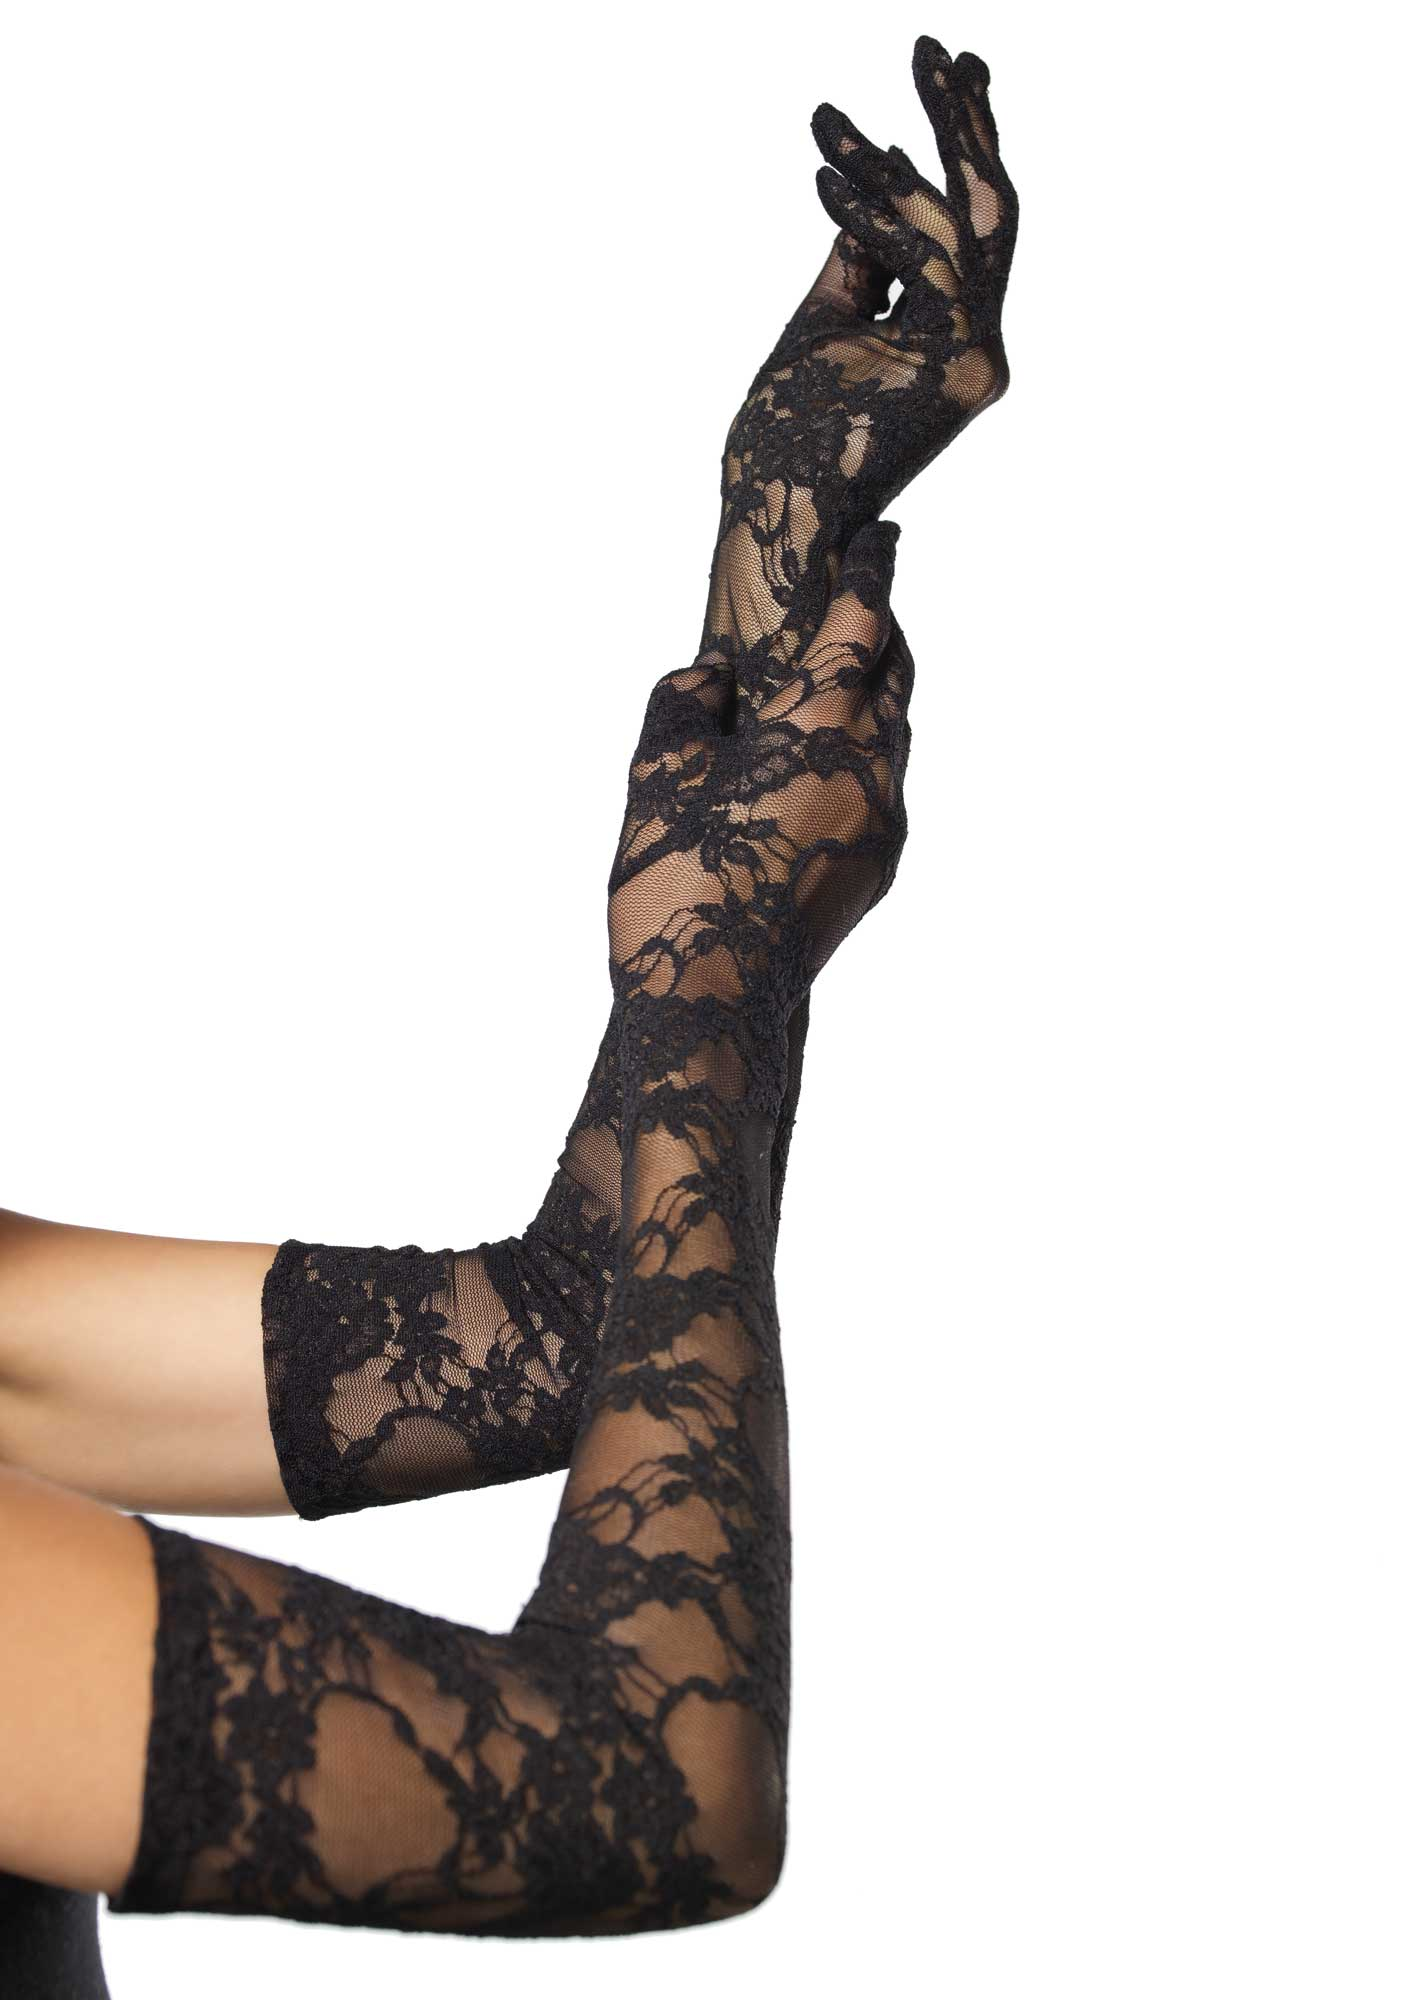 Black Opera Length Stretch Lace Gloves 1116 Edmonton